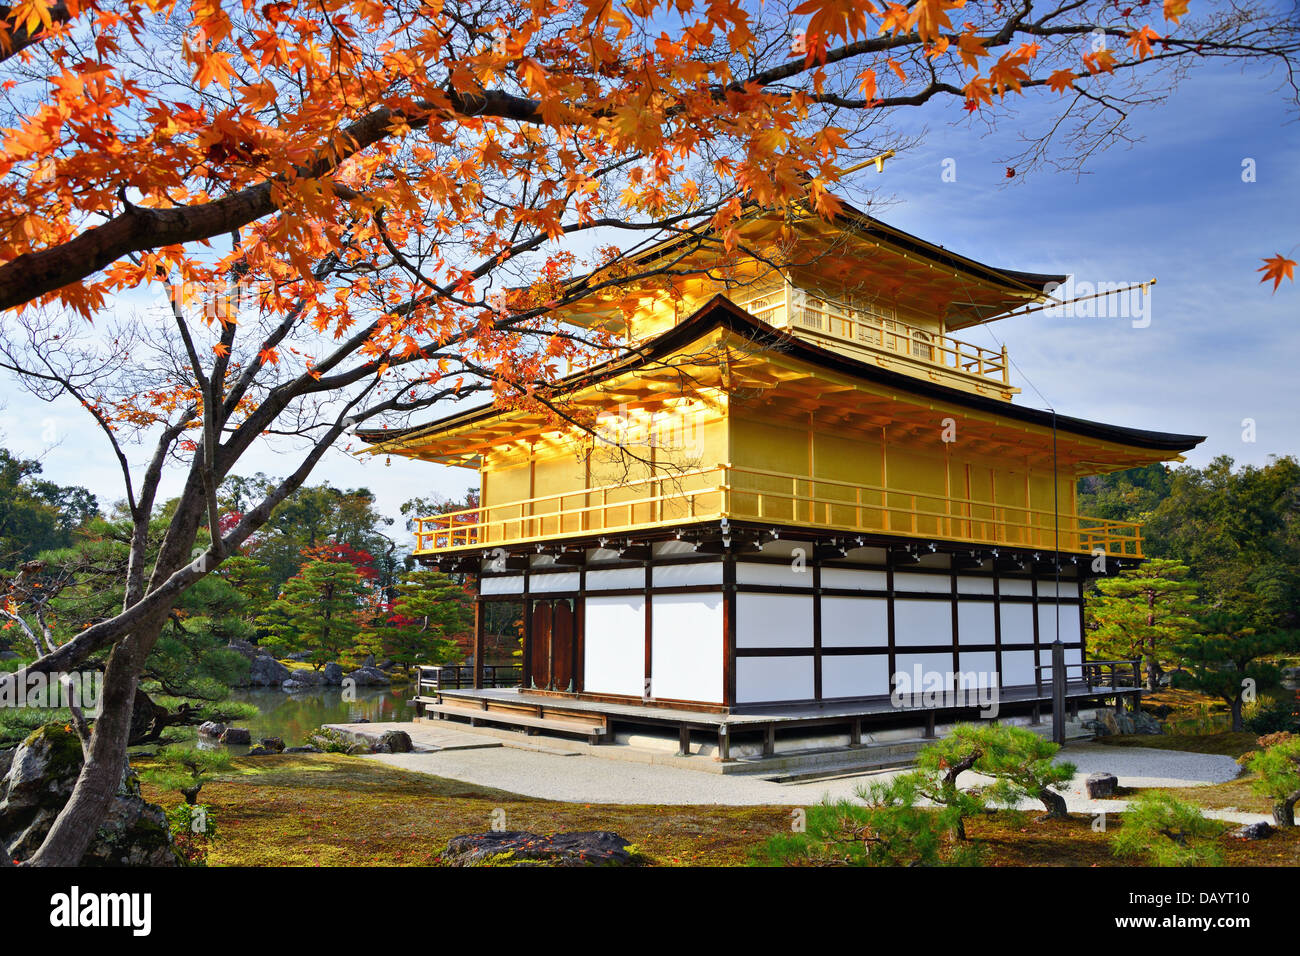 Temple of the Golden Pavilion on Kyoto, Japan. - Stock Image